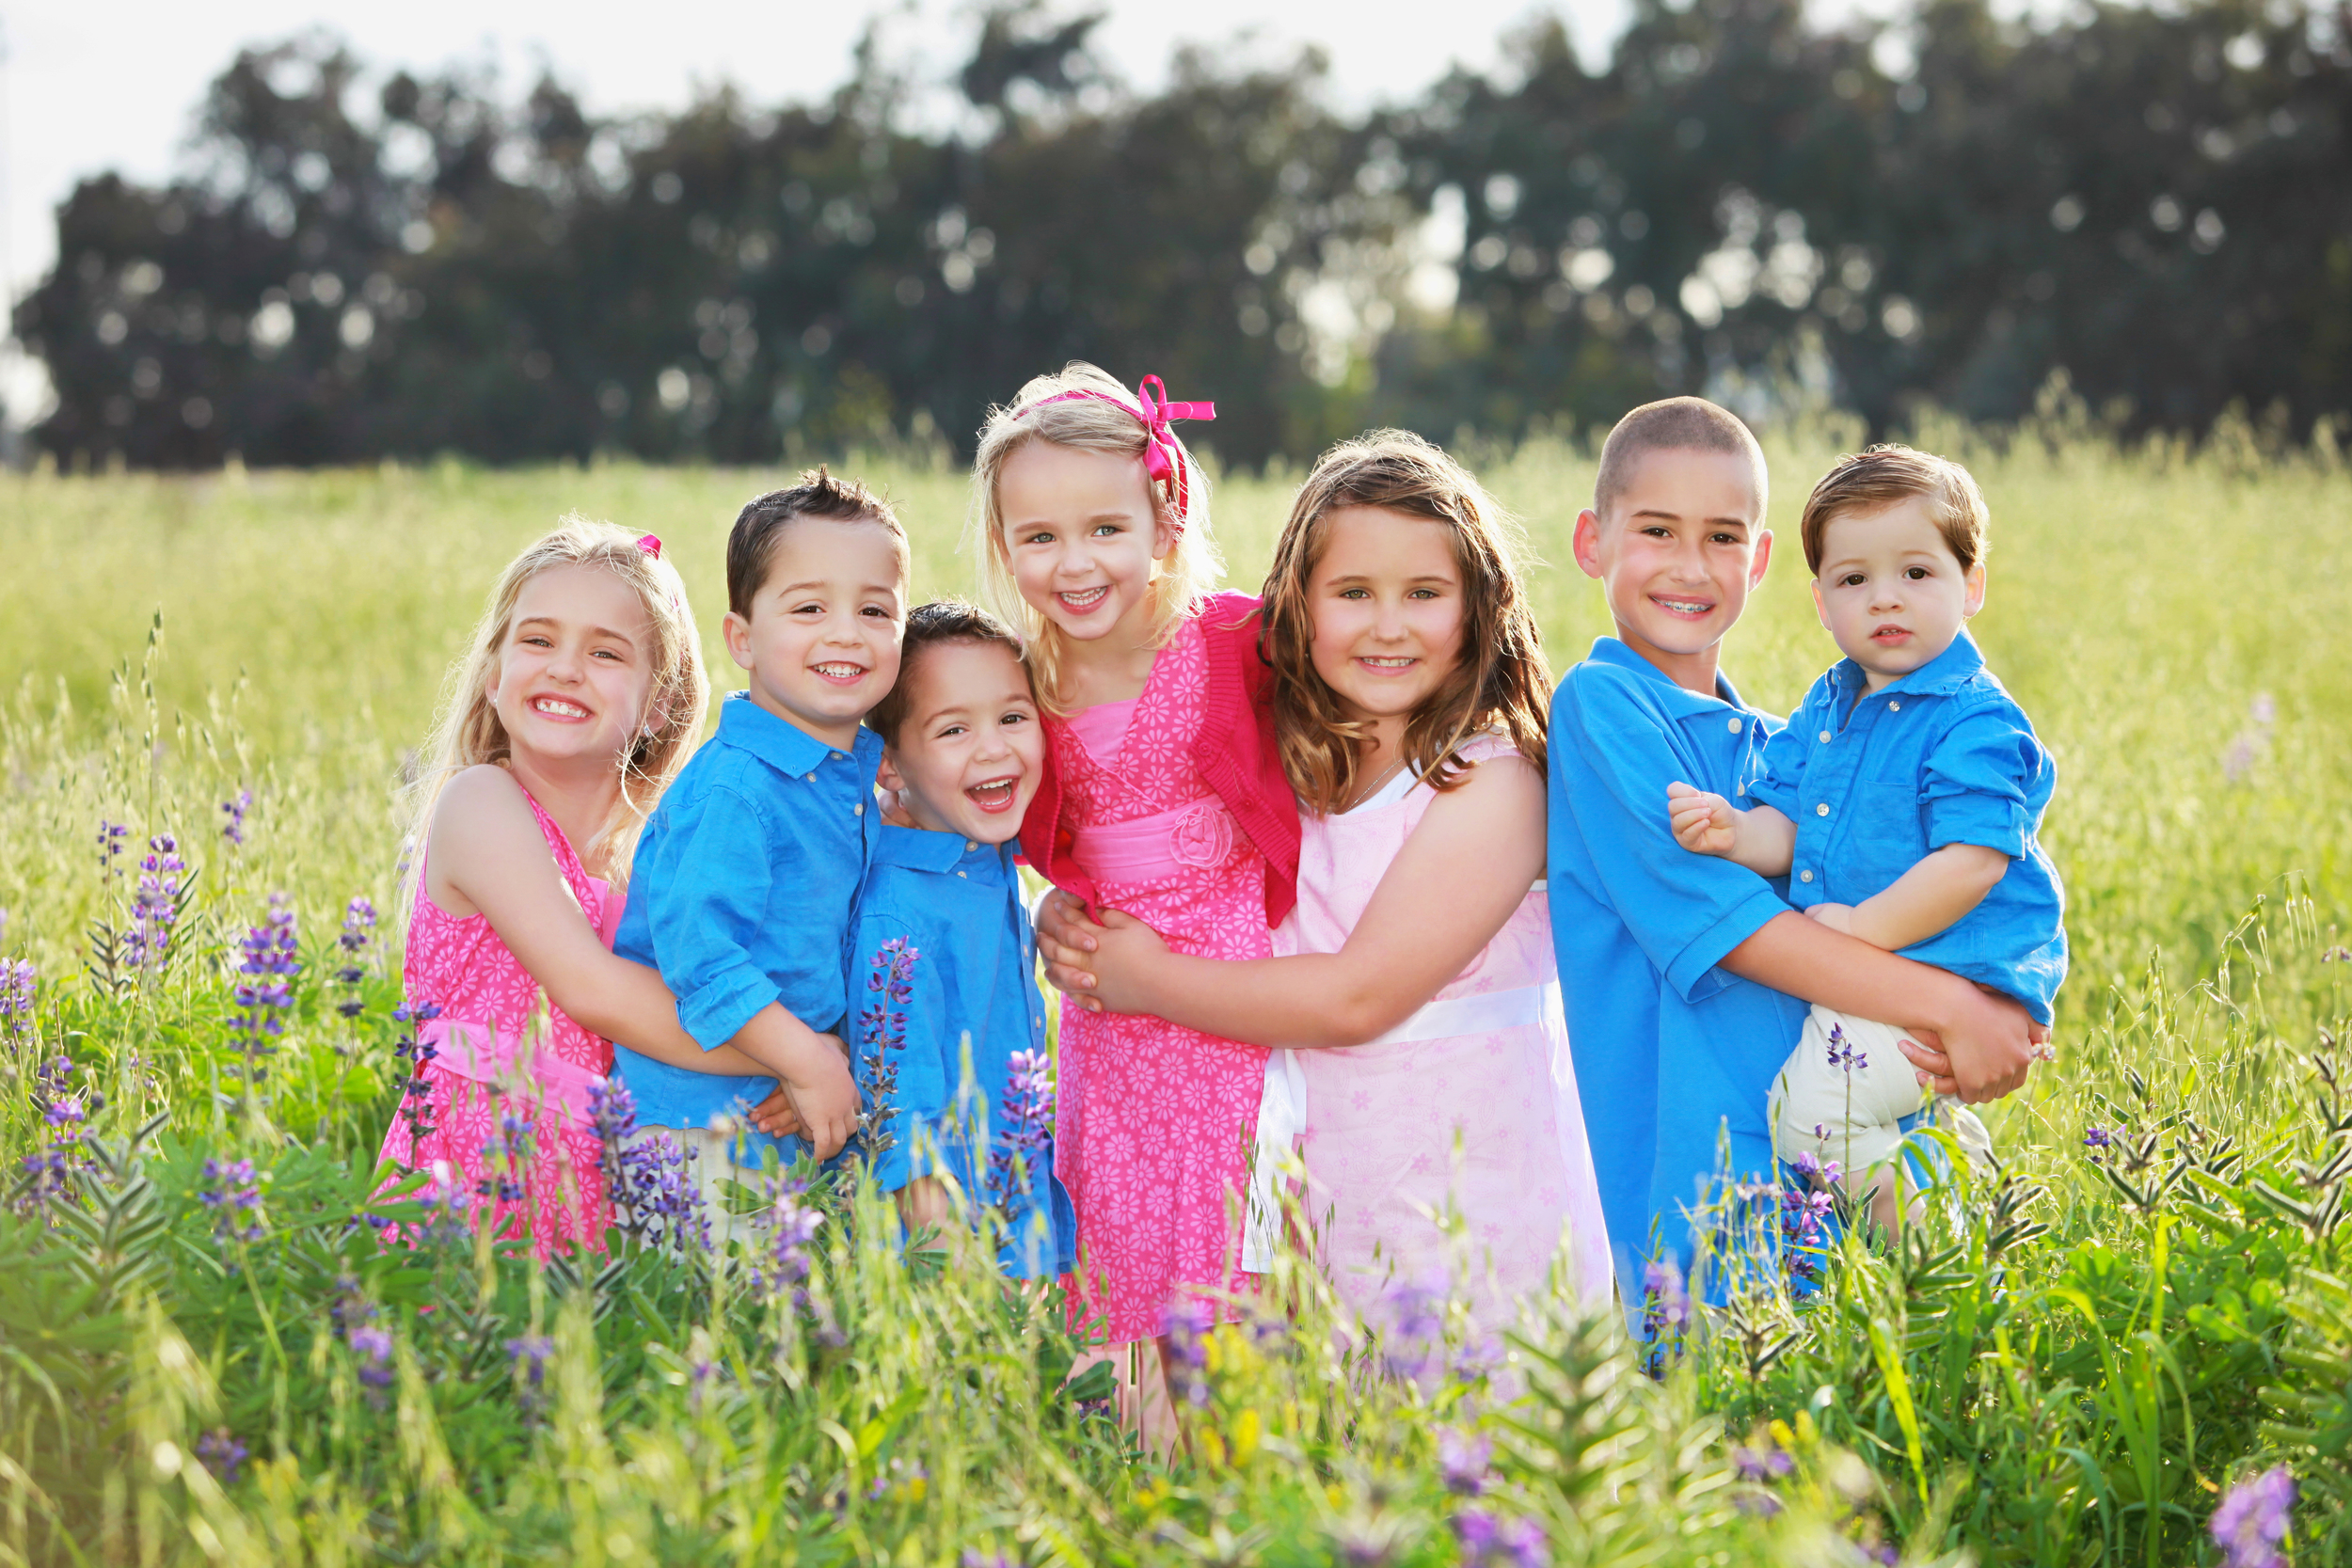 val-westover-photography-kids